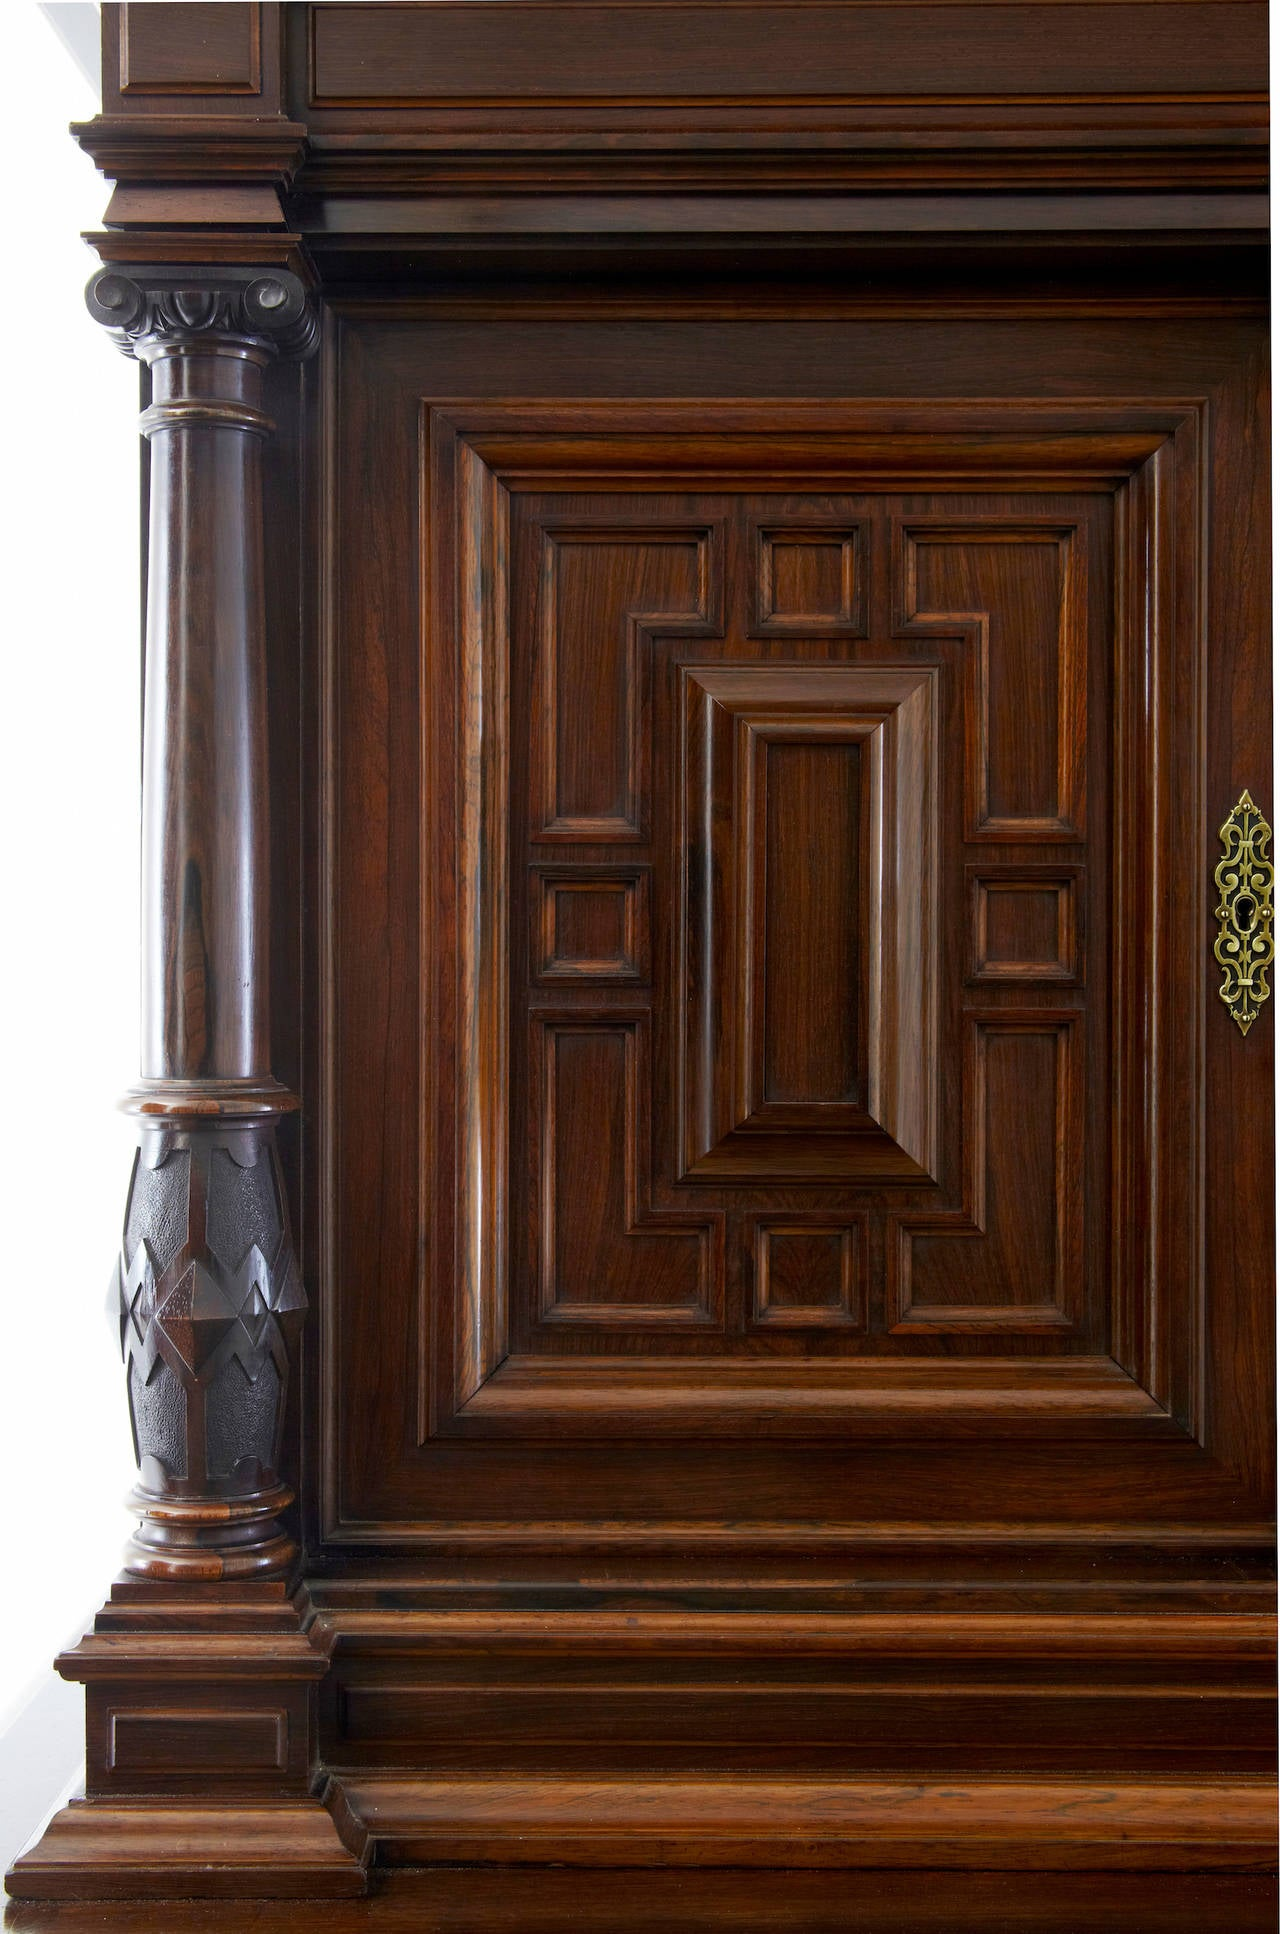 19th Century Italian Rosewood Baroque Style Cupboard In Good Condition For Sale In Debenham, Suffolk